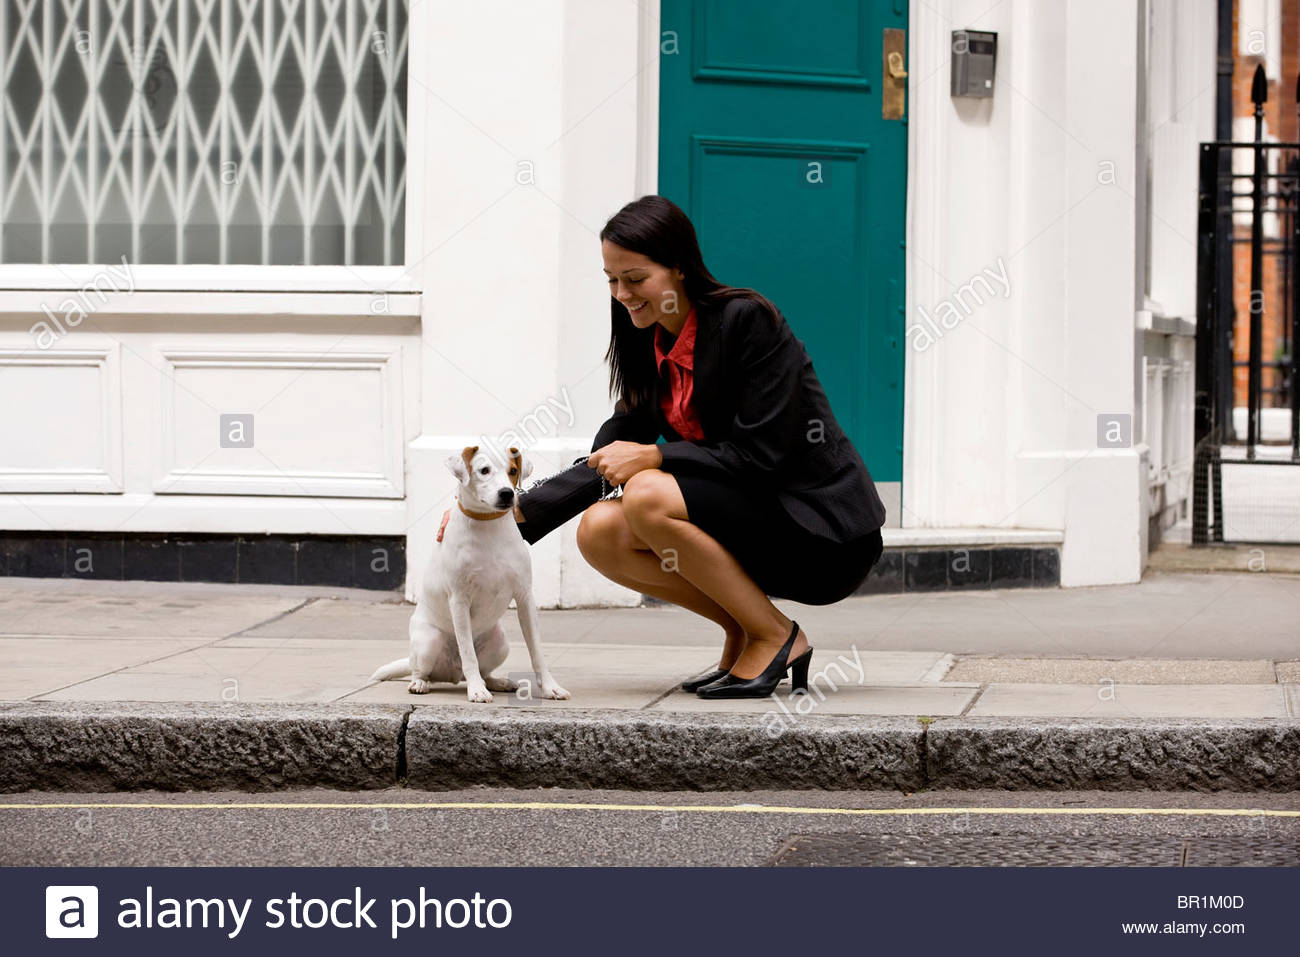 A businesswoman stroking her dog in the street - Stock Image